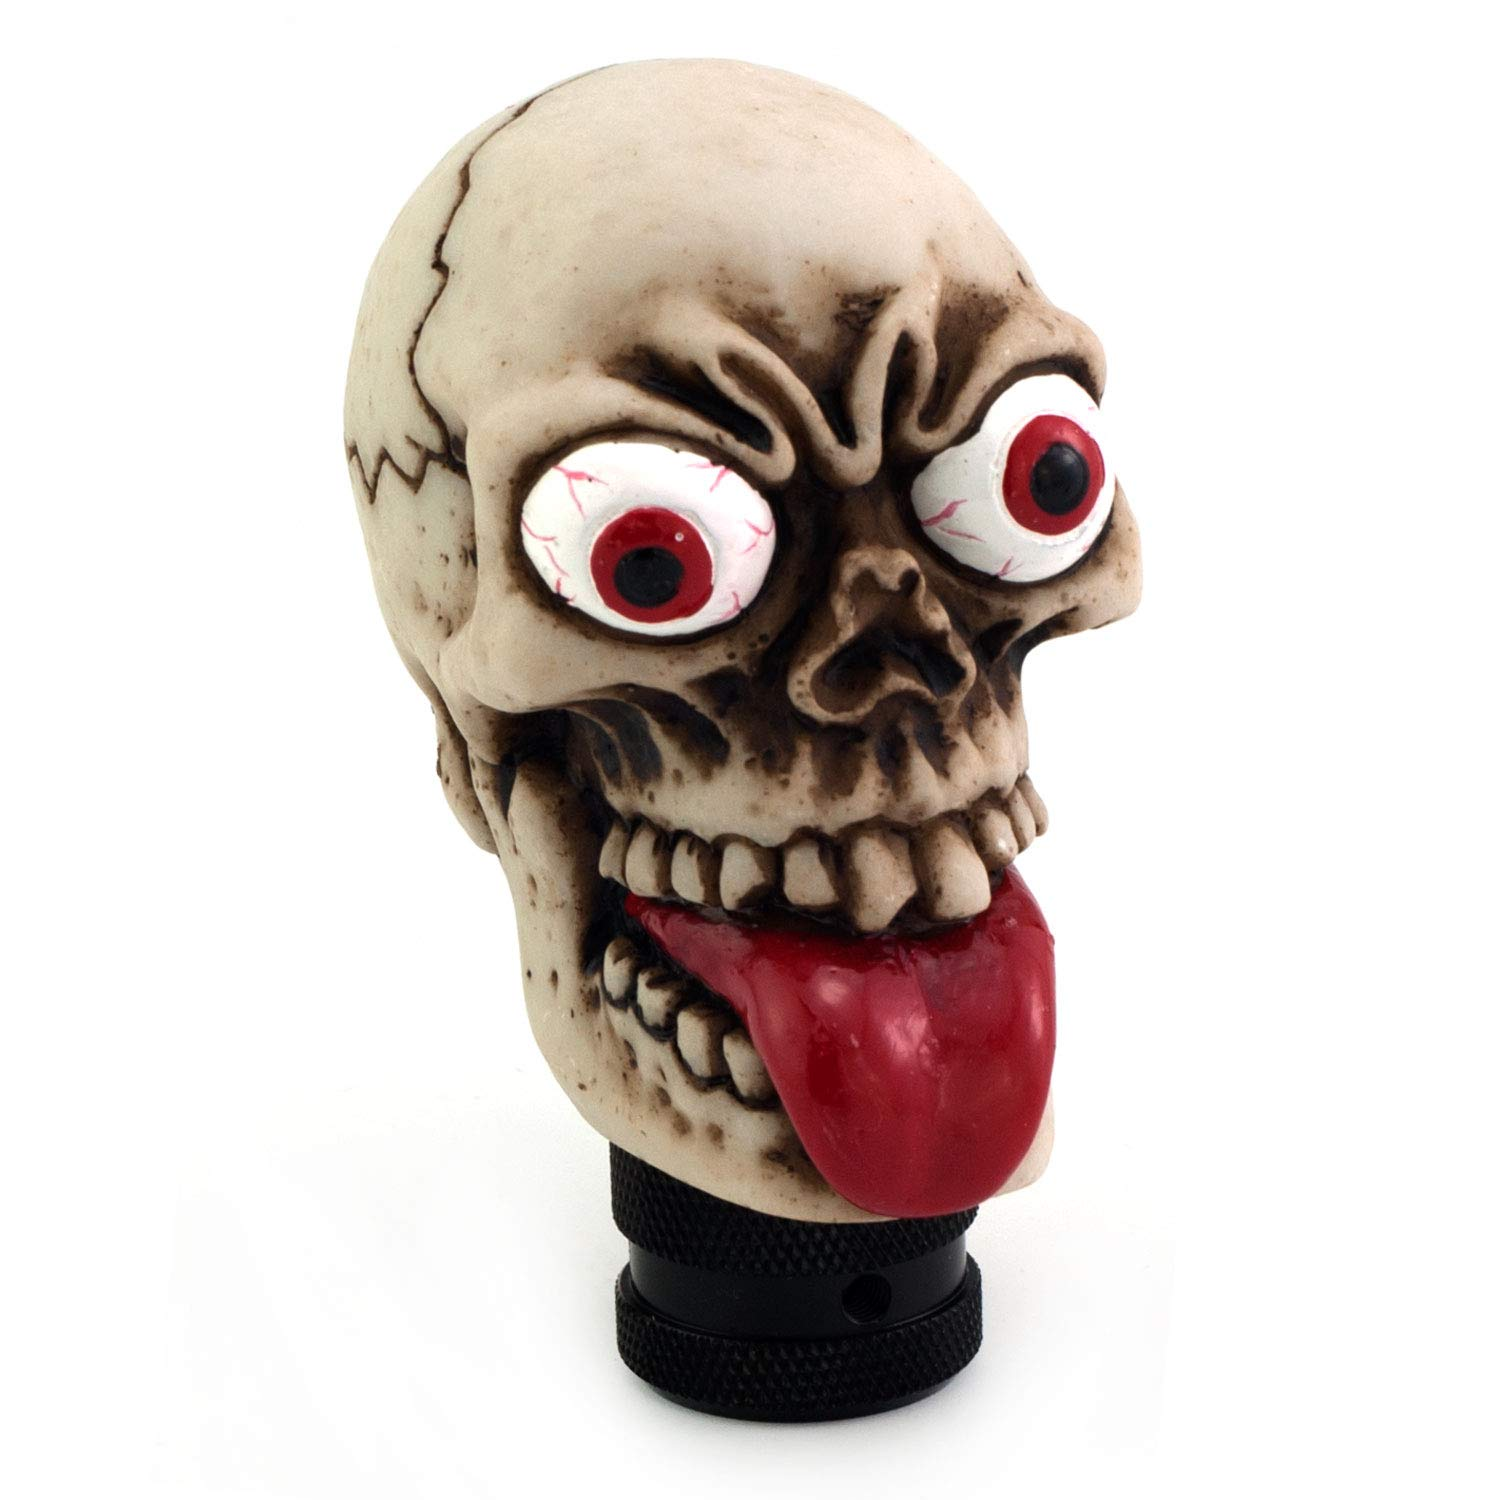 Thruifo Skull Gear Car Shift Knob, Funny Grimace Style MT Stick Shifter Head Fit Most Manual Automatic Vehicles